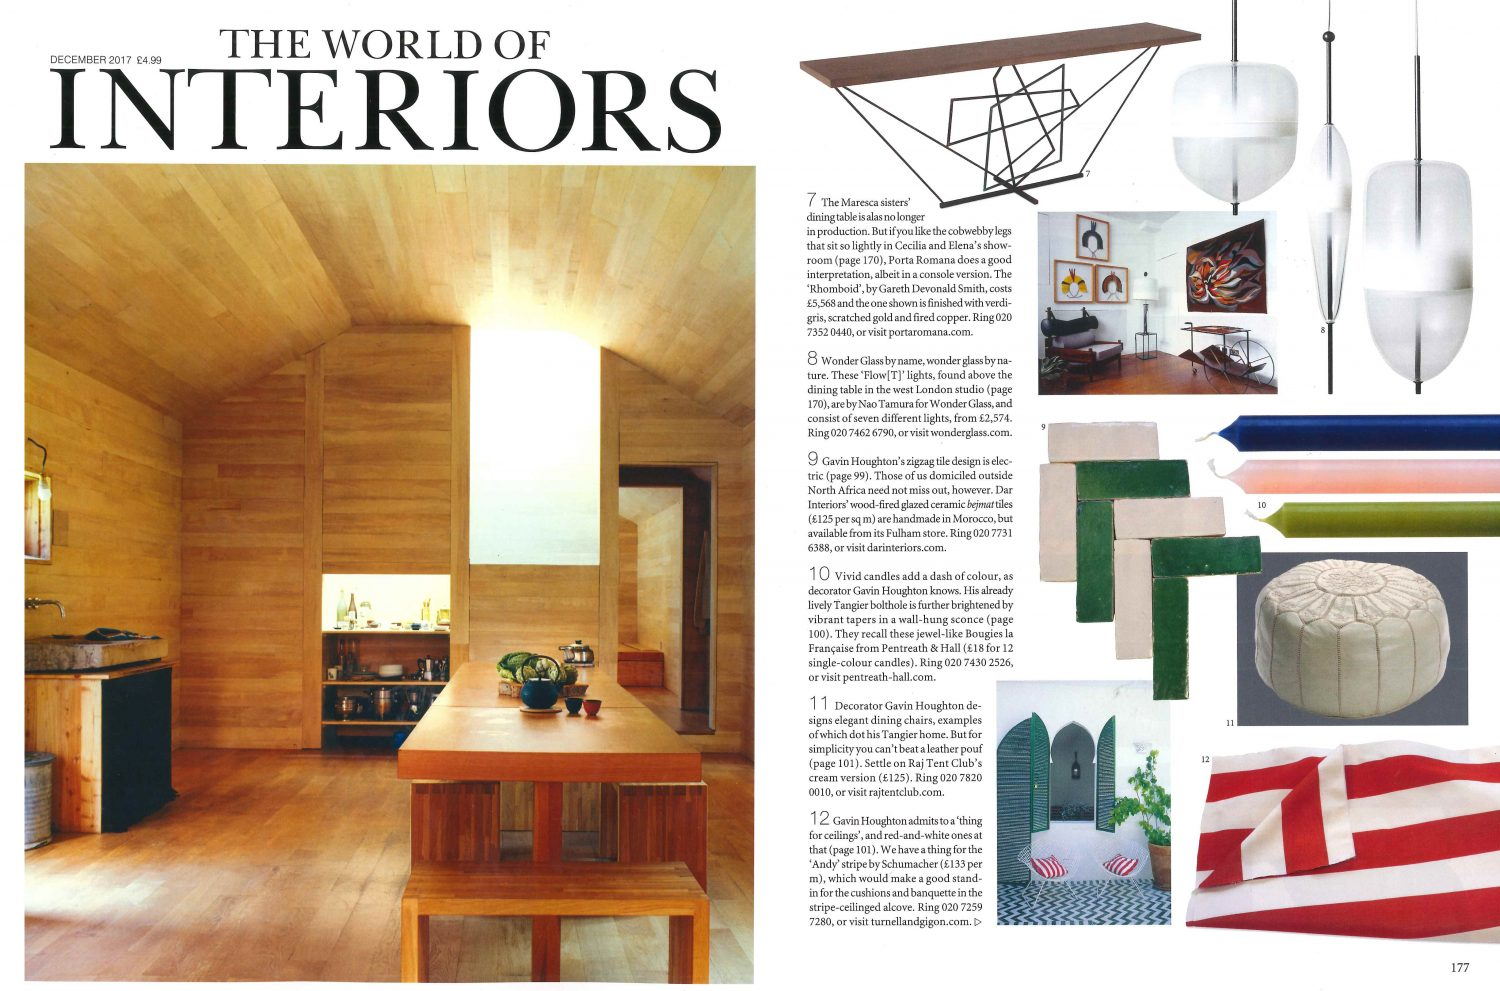 Boat International, July 2018. Featuring The Cologne Lamp